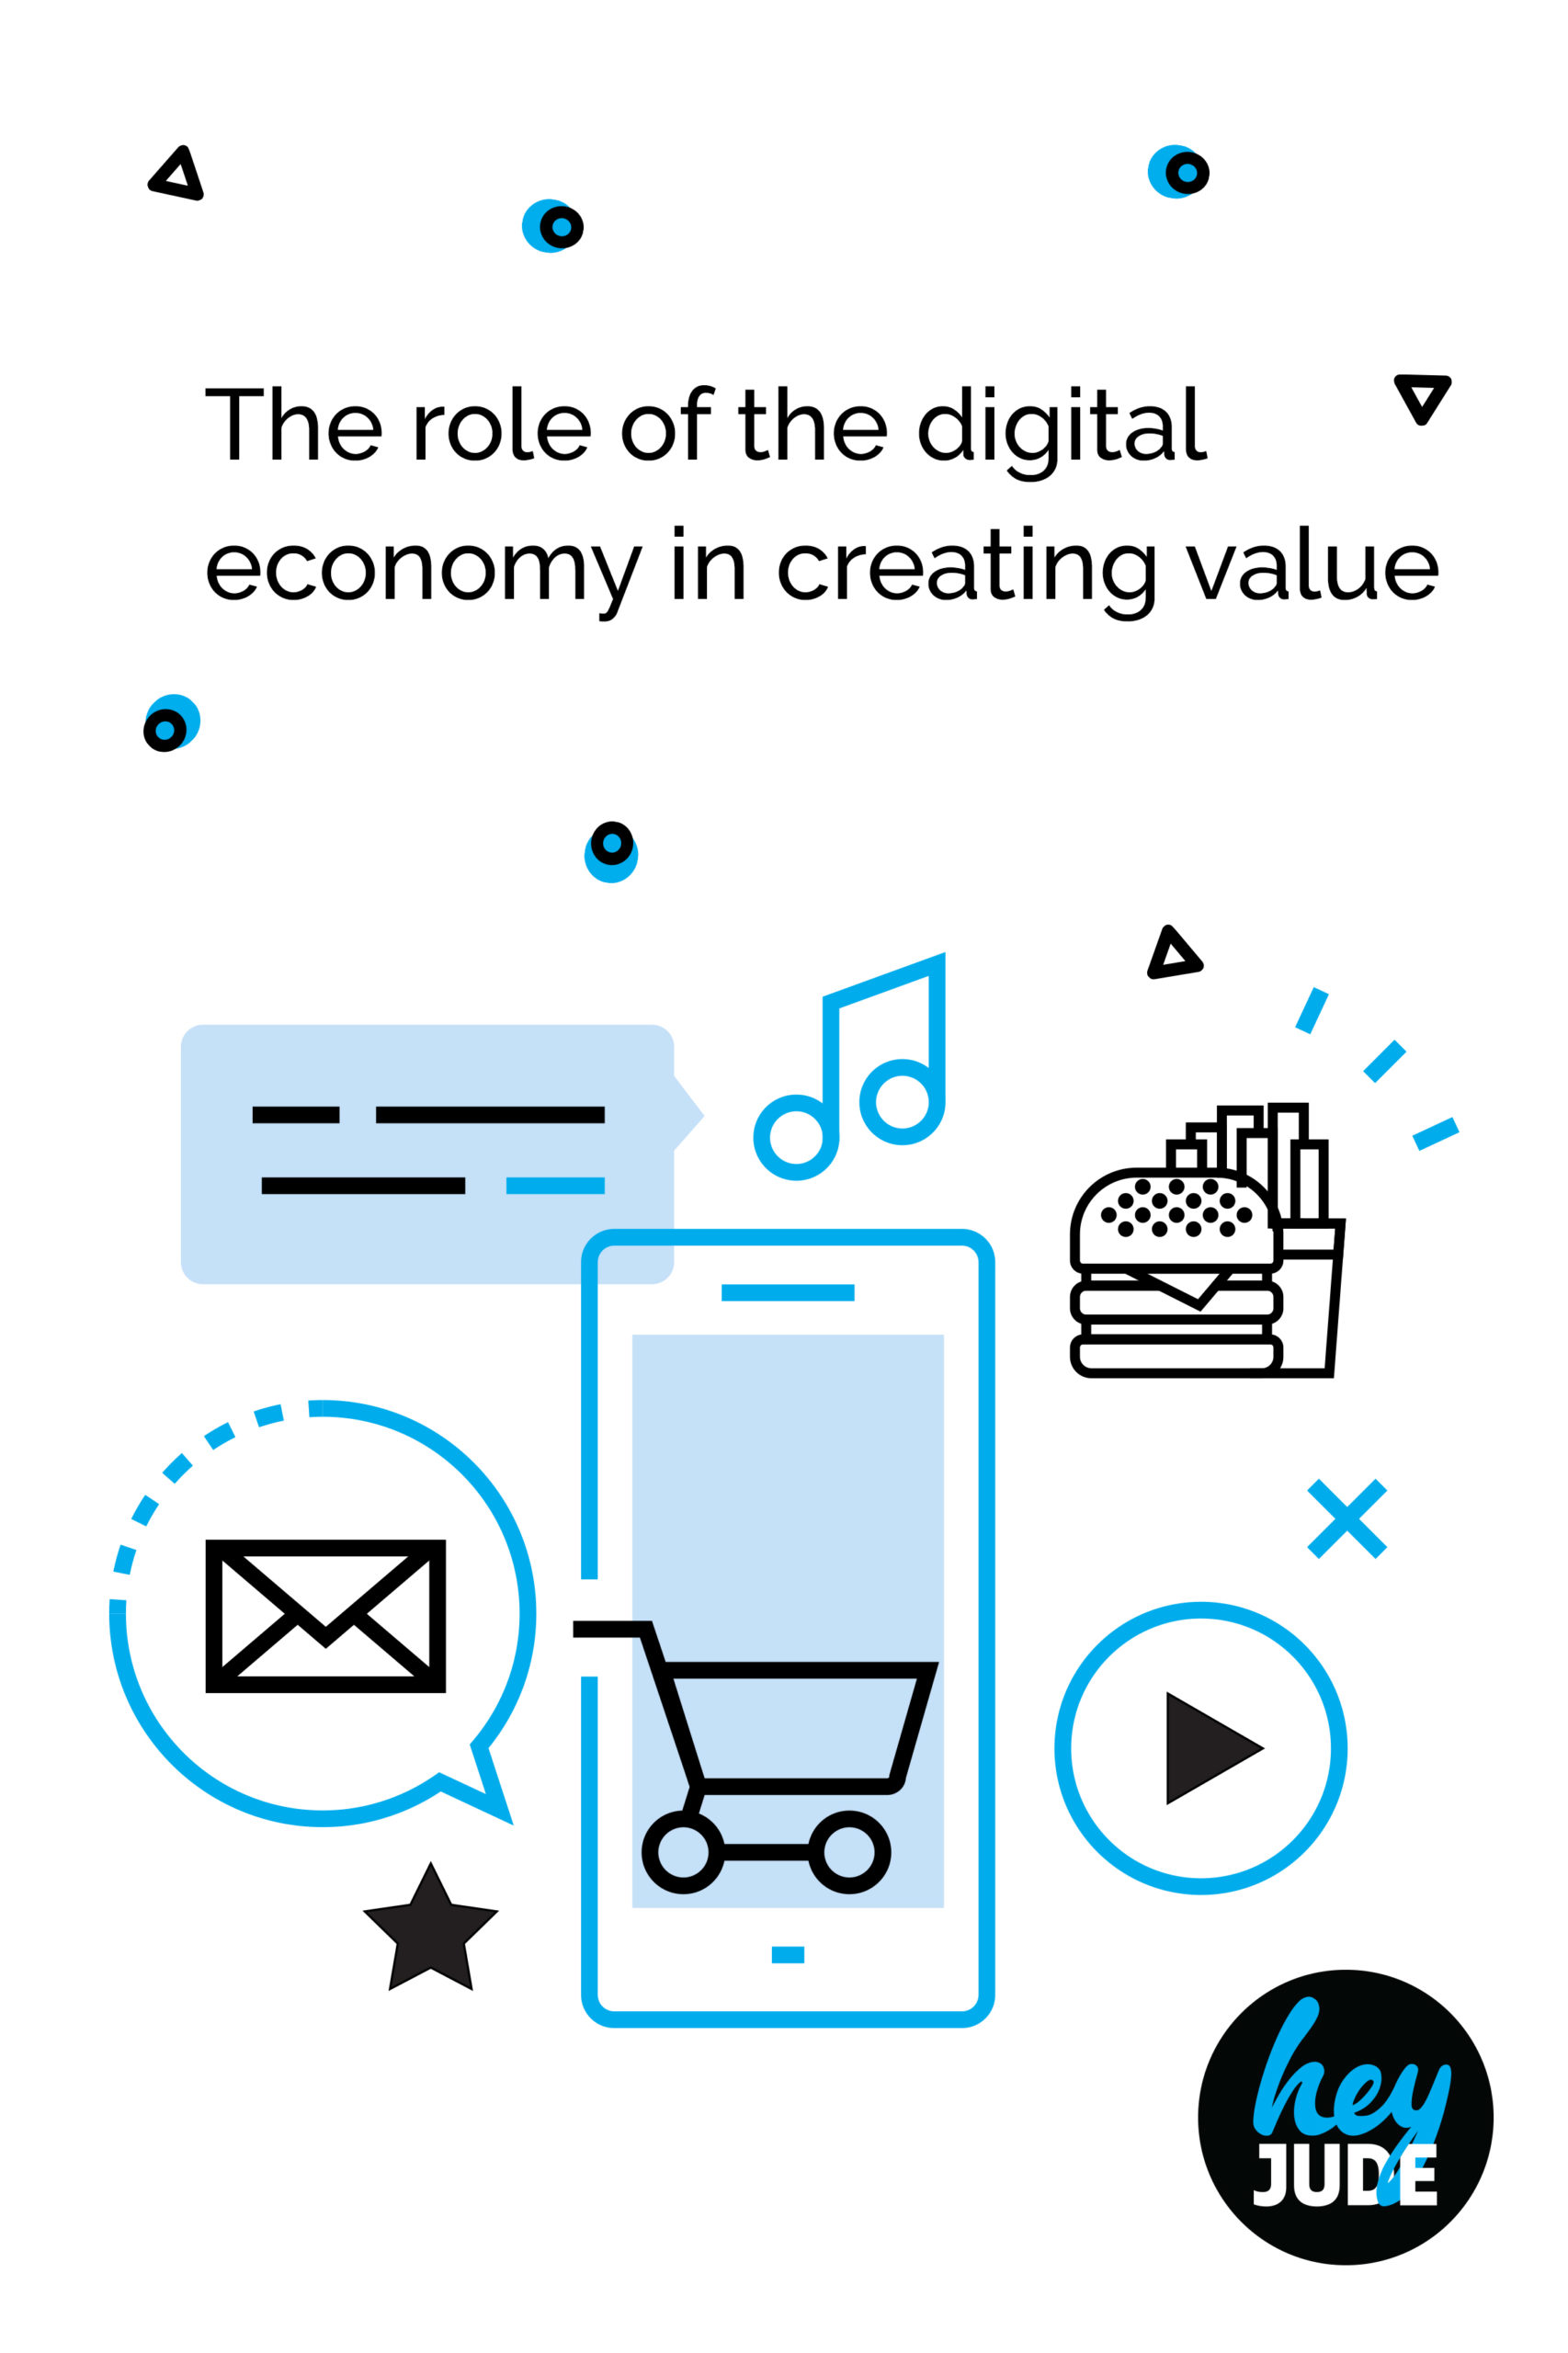 How the digital economy can create added value